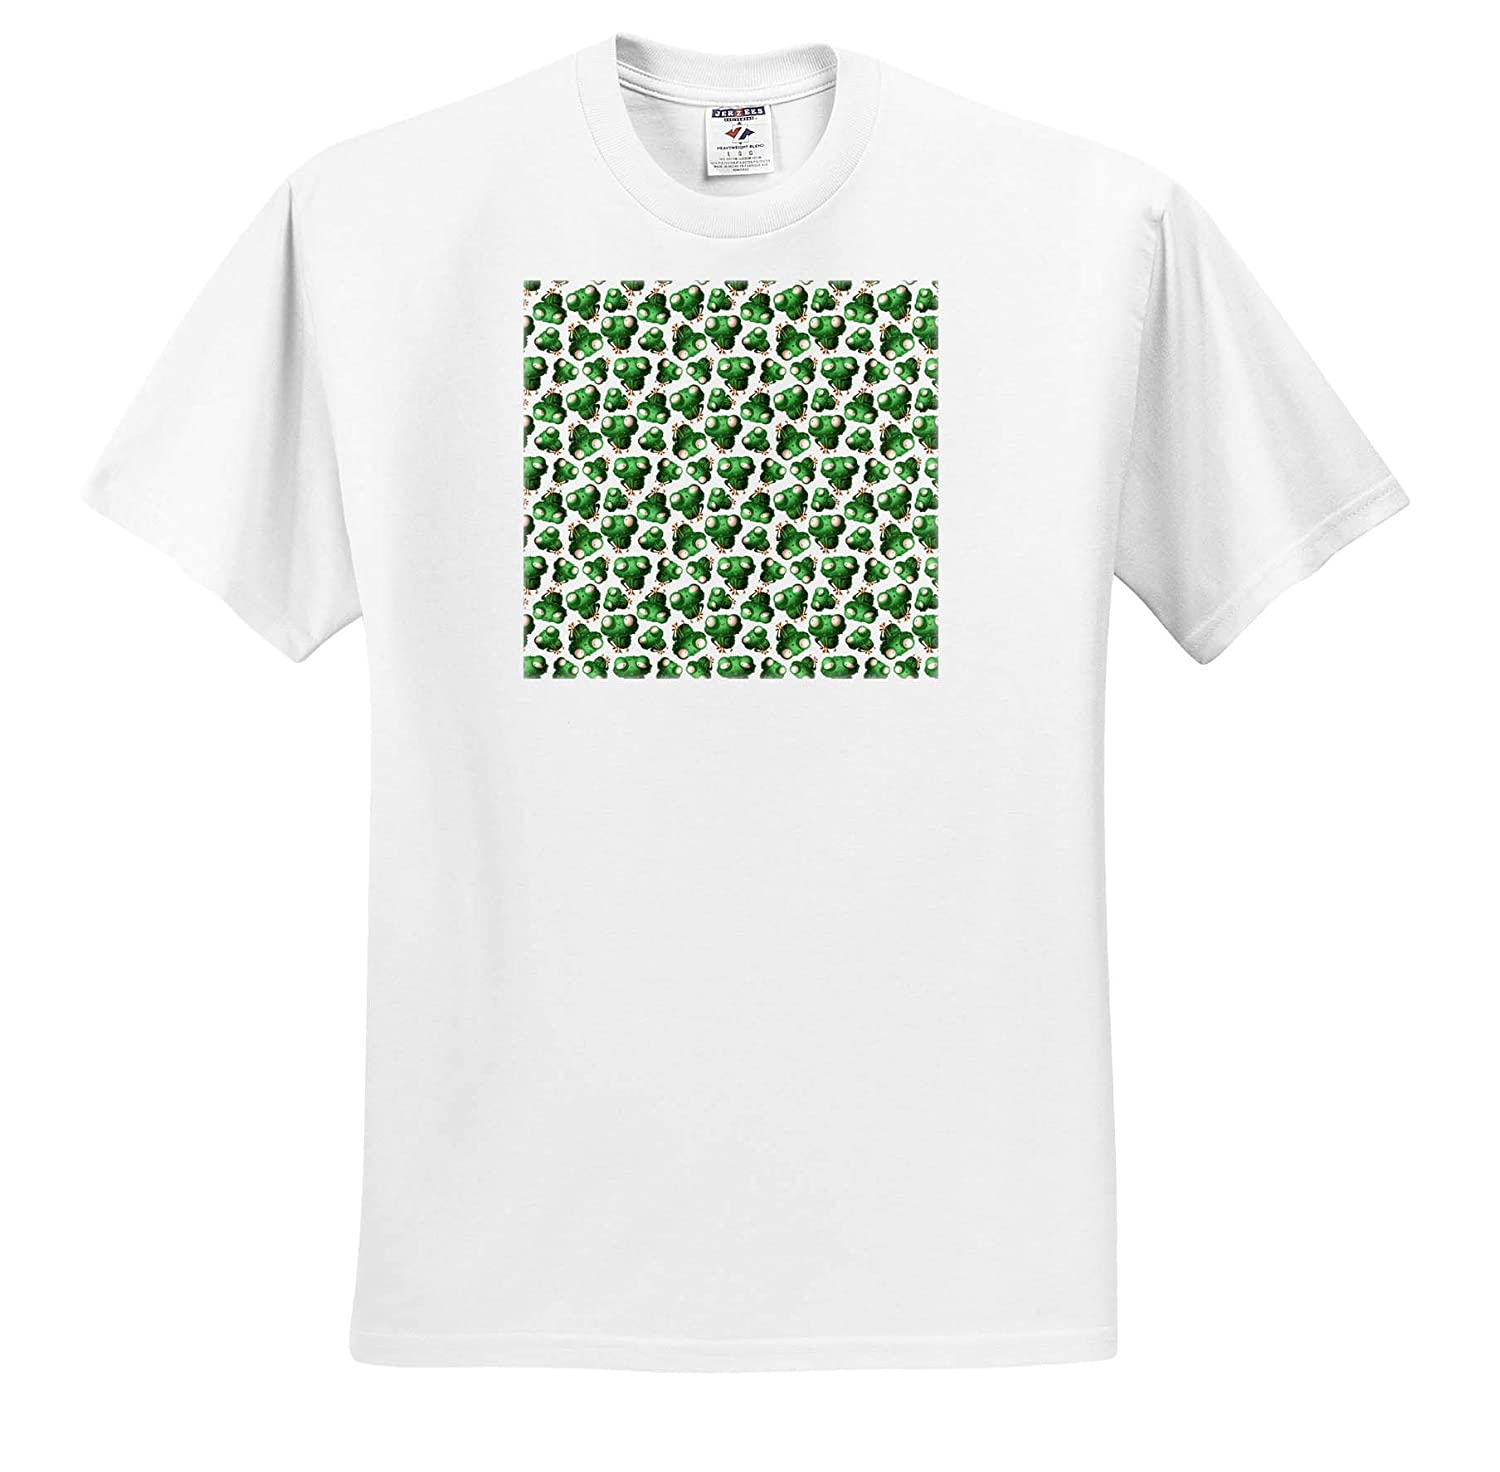 Pattern Frogs Decorative Pattern of Funny Green Frogs on White Background 3dRose Alexis Design T-Shirts